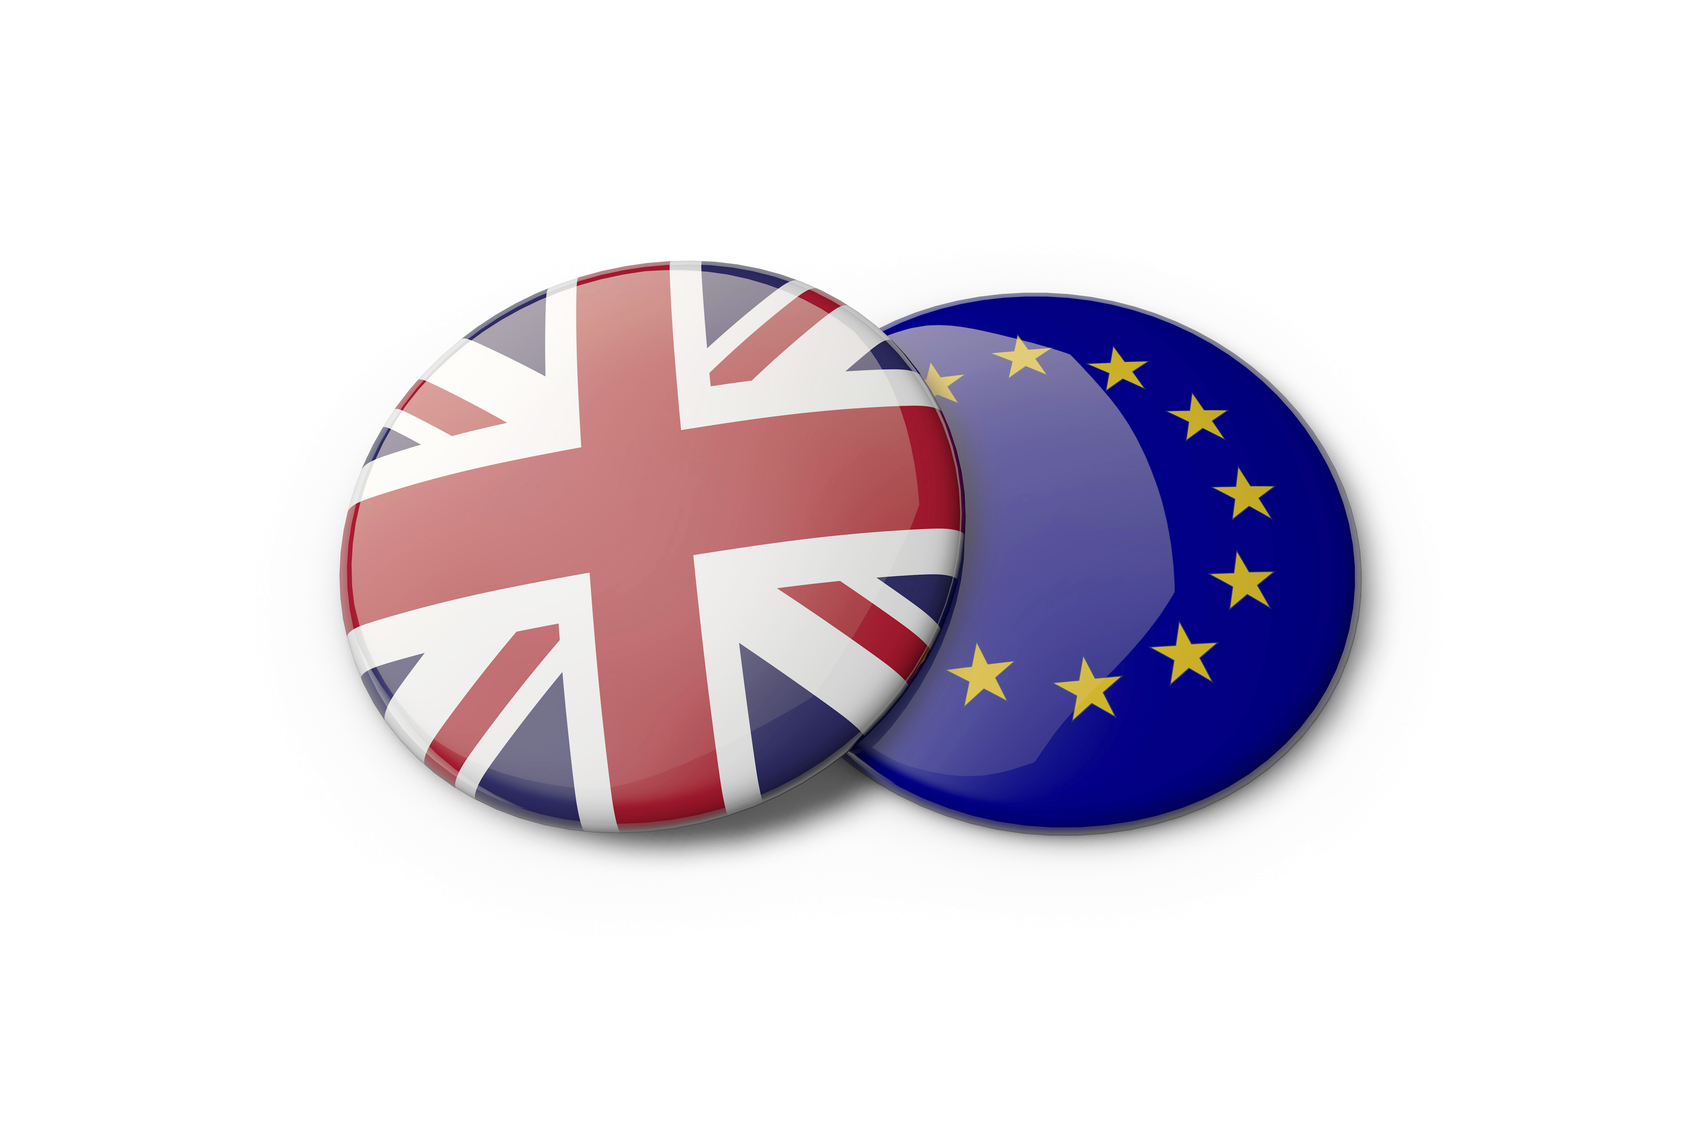 EU and UK badges